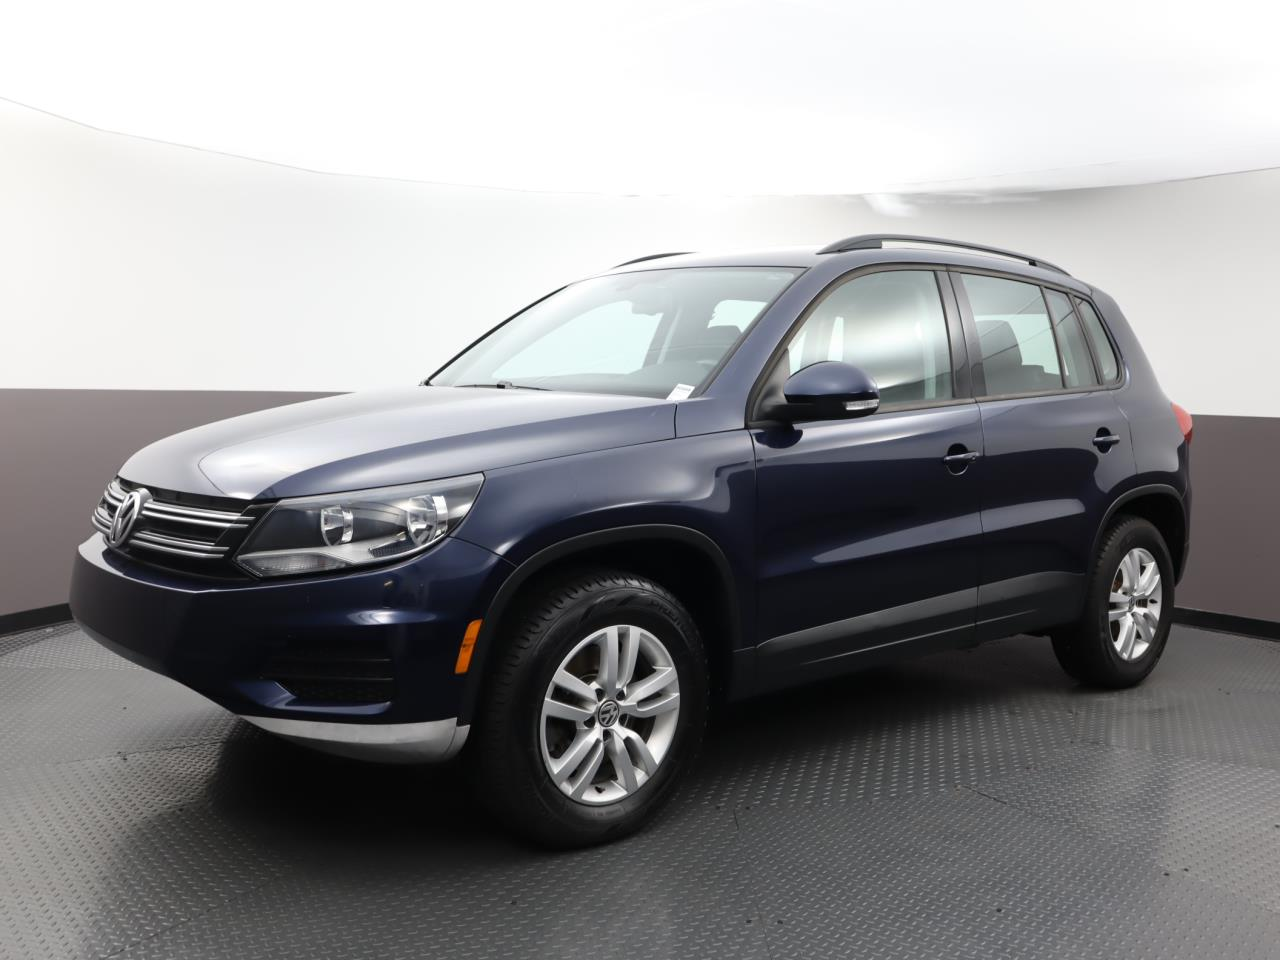 Used VOLKSWAGEN TIGUAN 2016 WEST PALM S